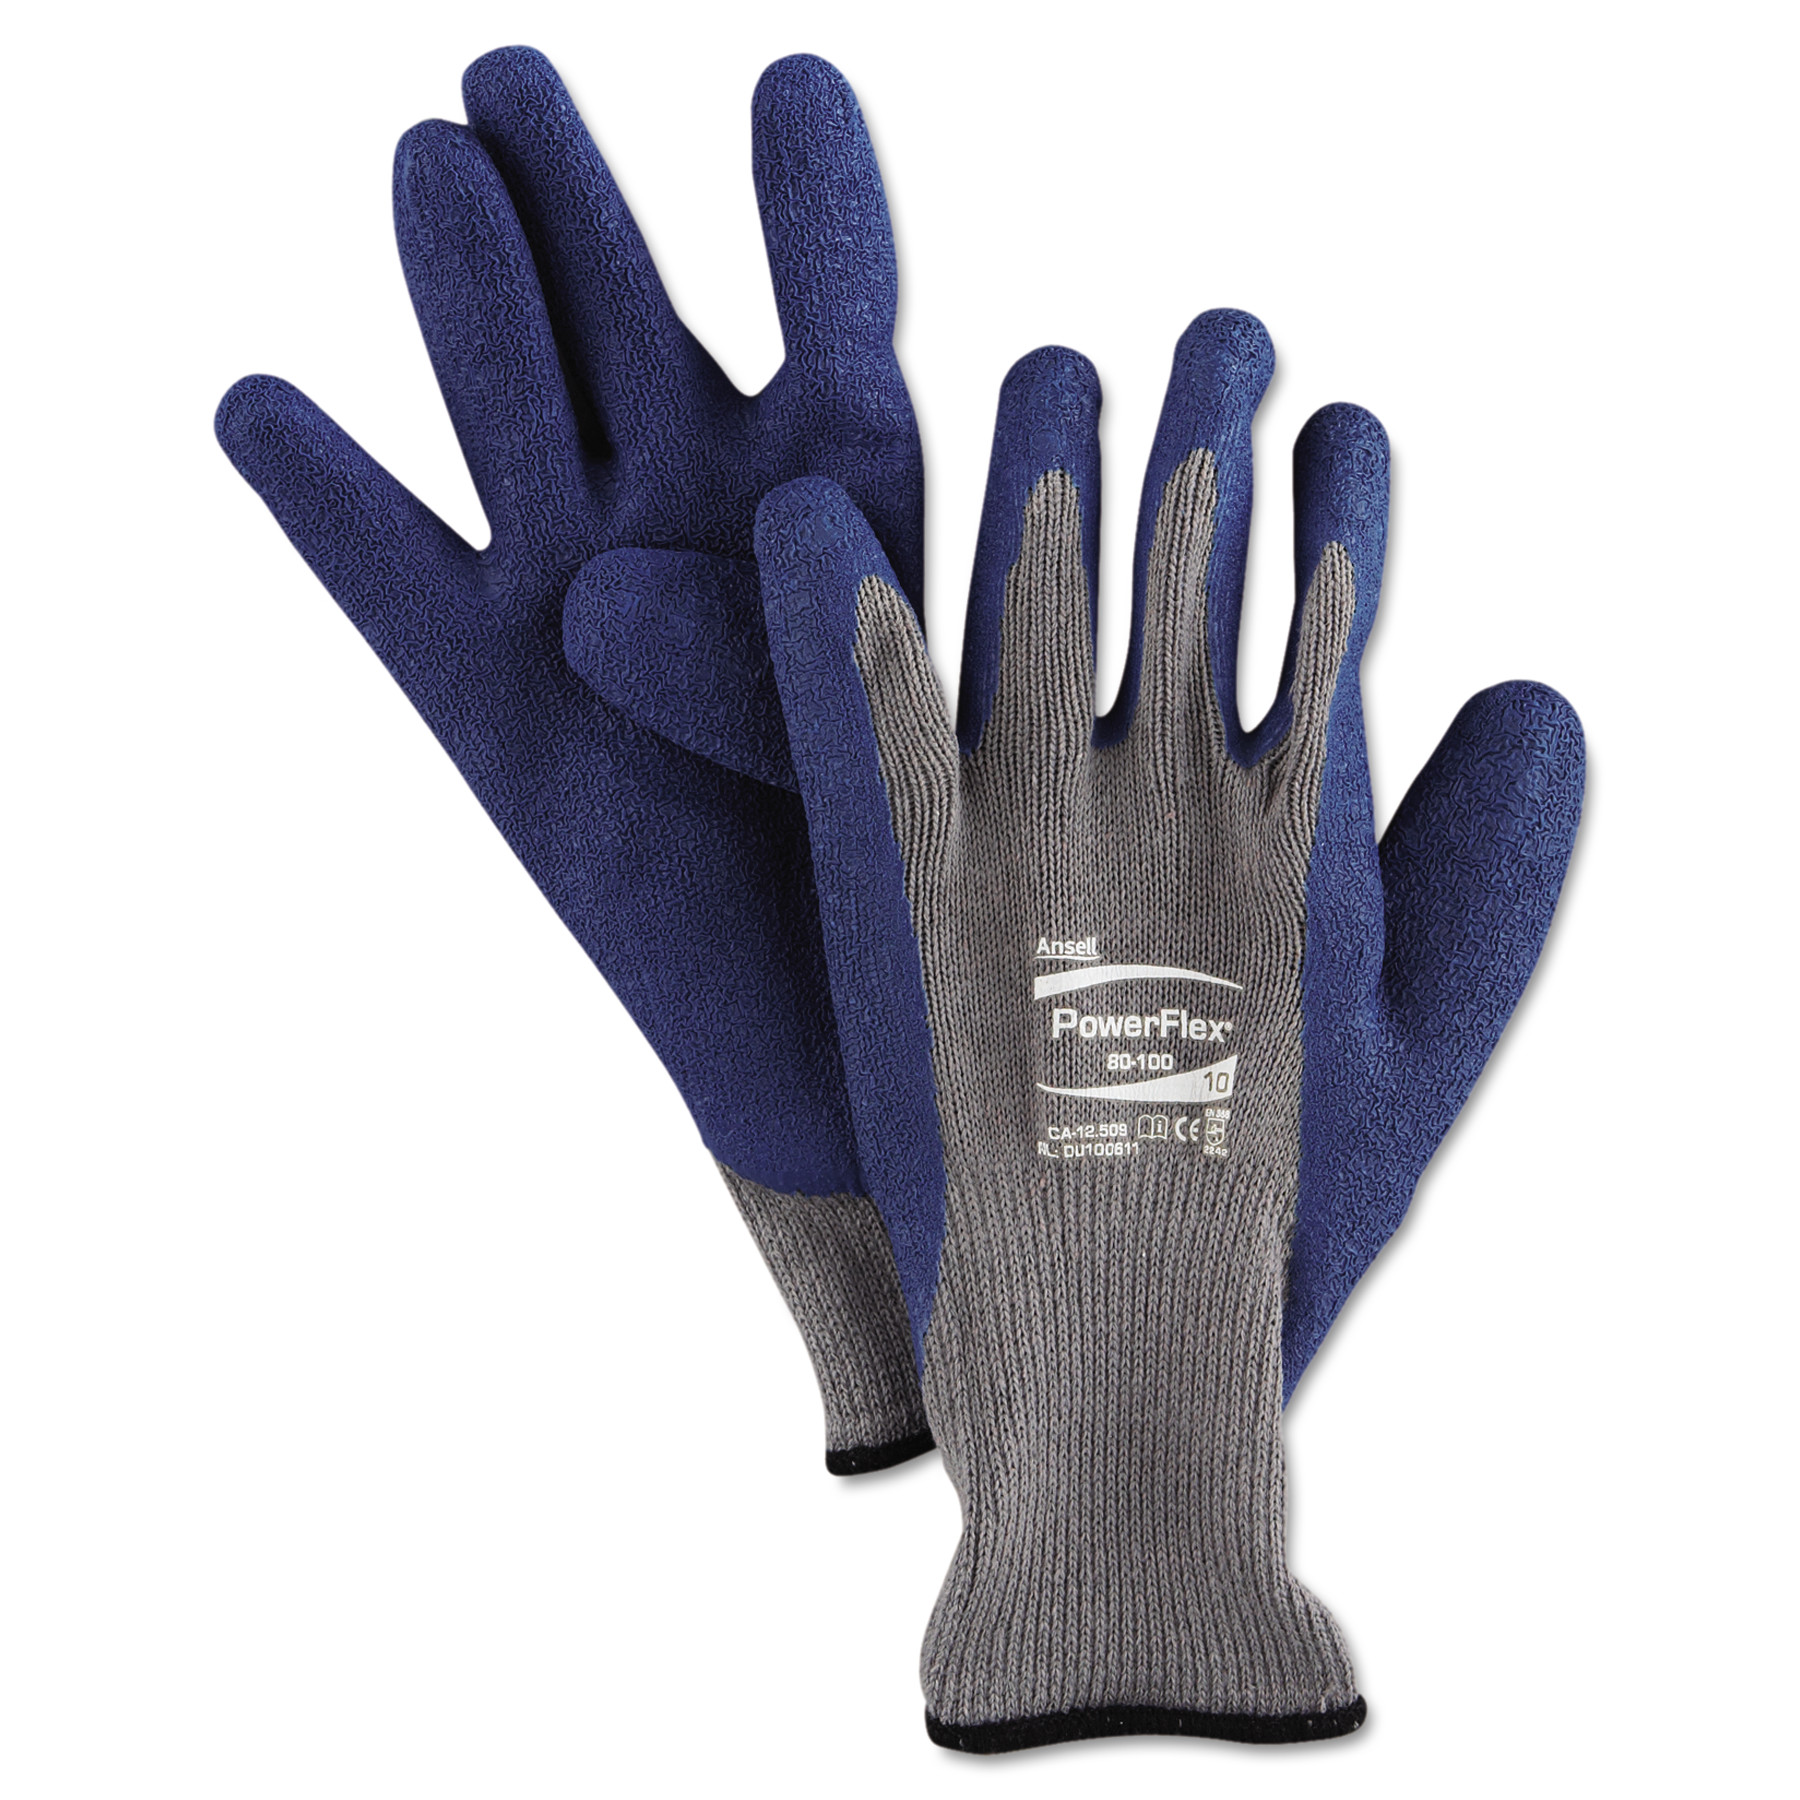 AnsellPro PowerFlex Gloves, Blue/Gray, Size 10, 12 Pairs/Pack